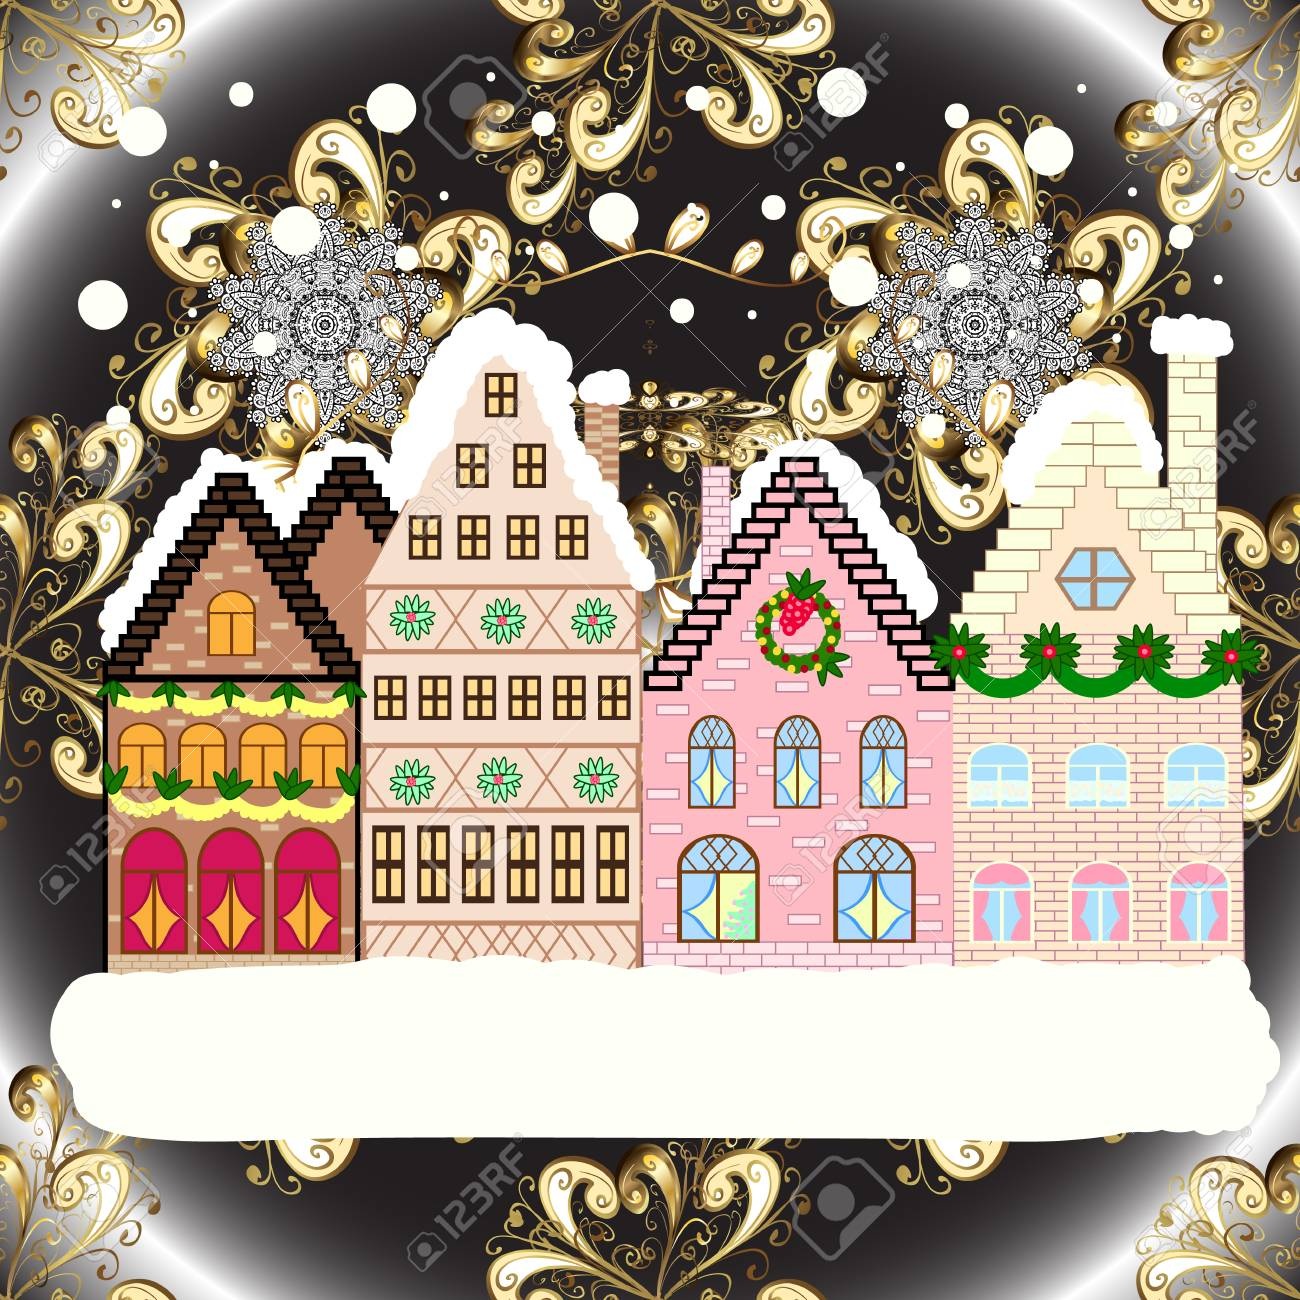 Christmas Houses Village.Christmas Winter Scene Evening Village Winter Landscape With